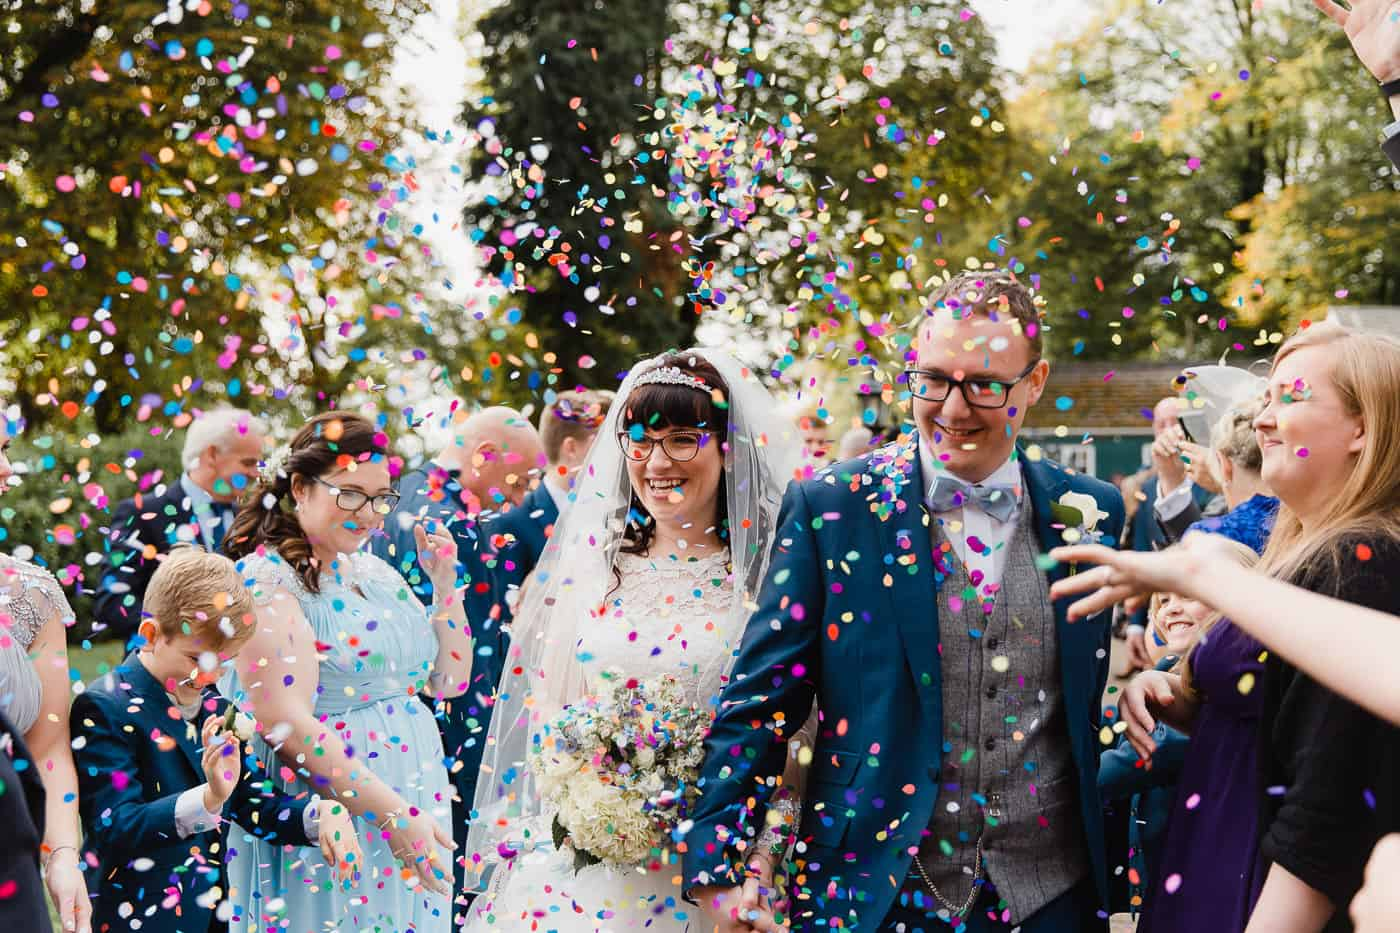 two people smiling walking through confetti